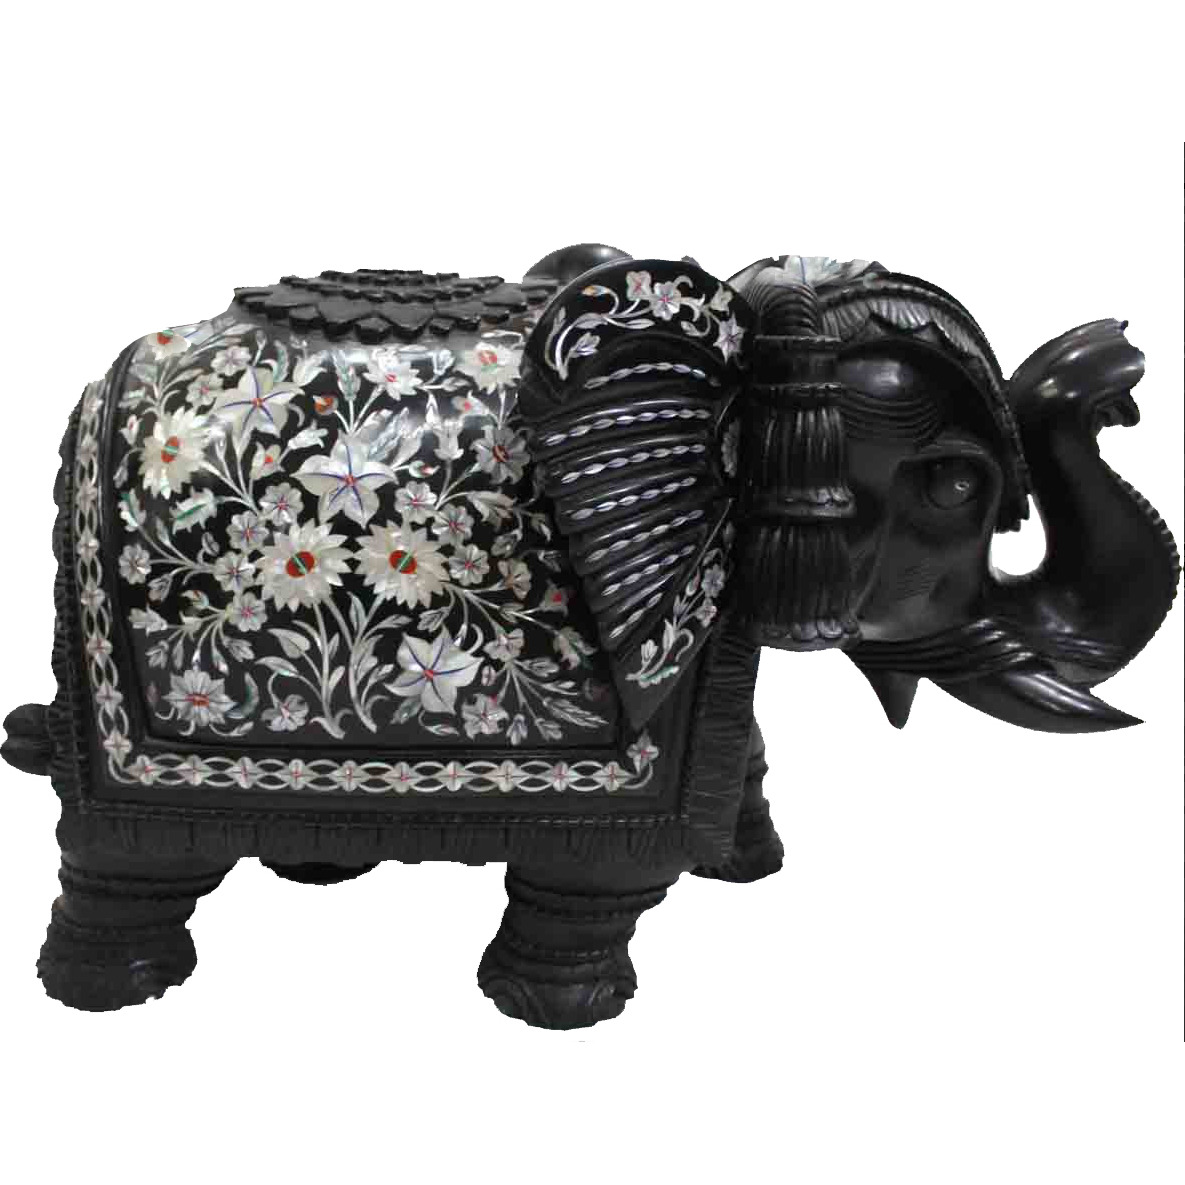 Buy Online Black Marble Elephant From Usa Zifiti Com Page